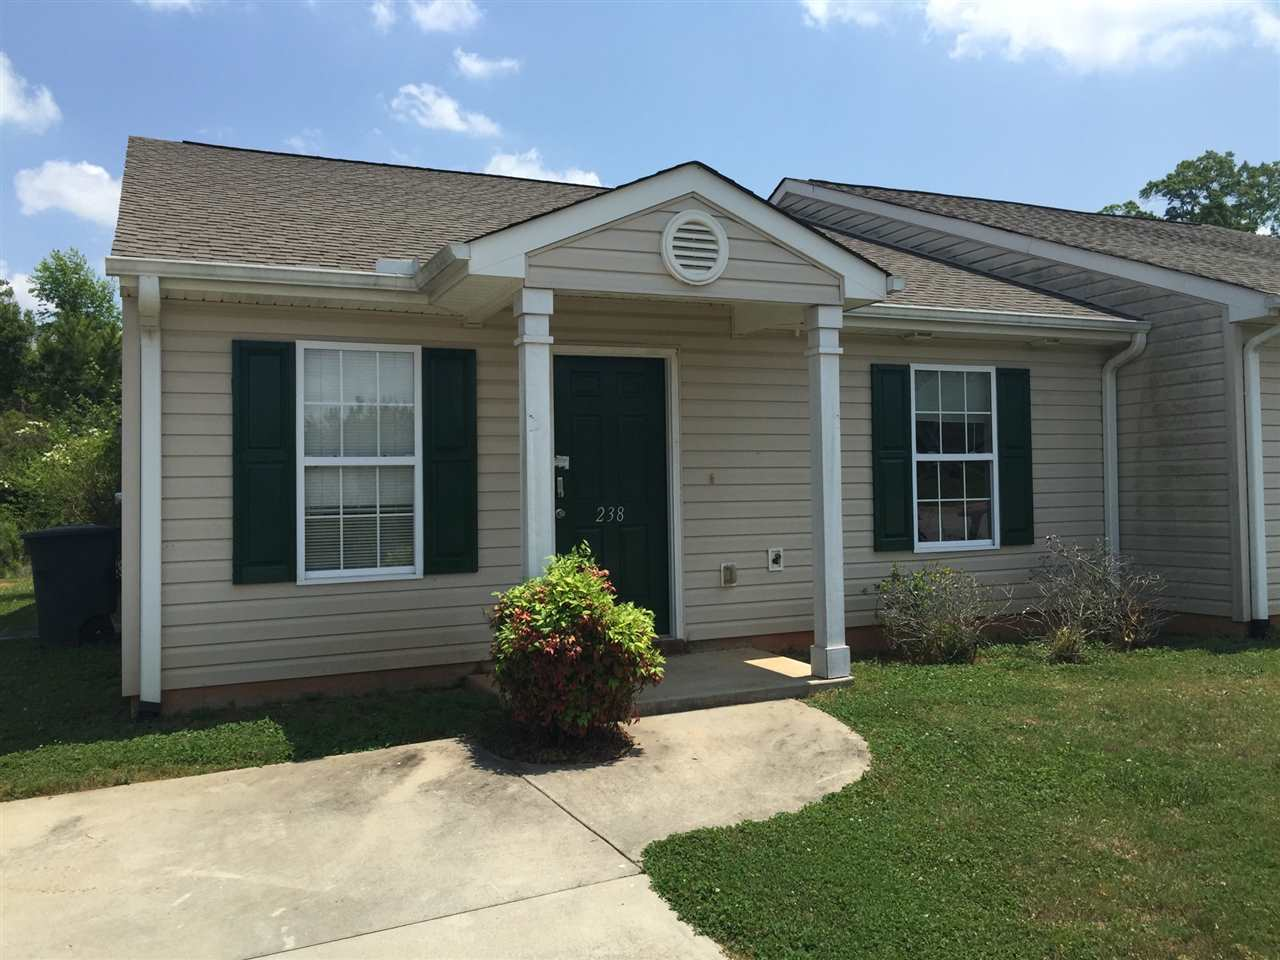 Rental Homes for Rent, ListingId:33299164, location: 238 Tamarack Drive Seneca 29678